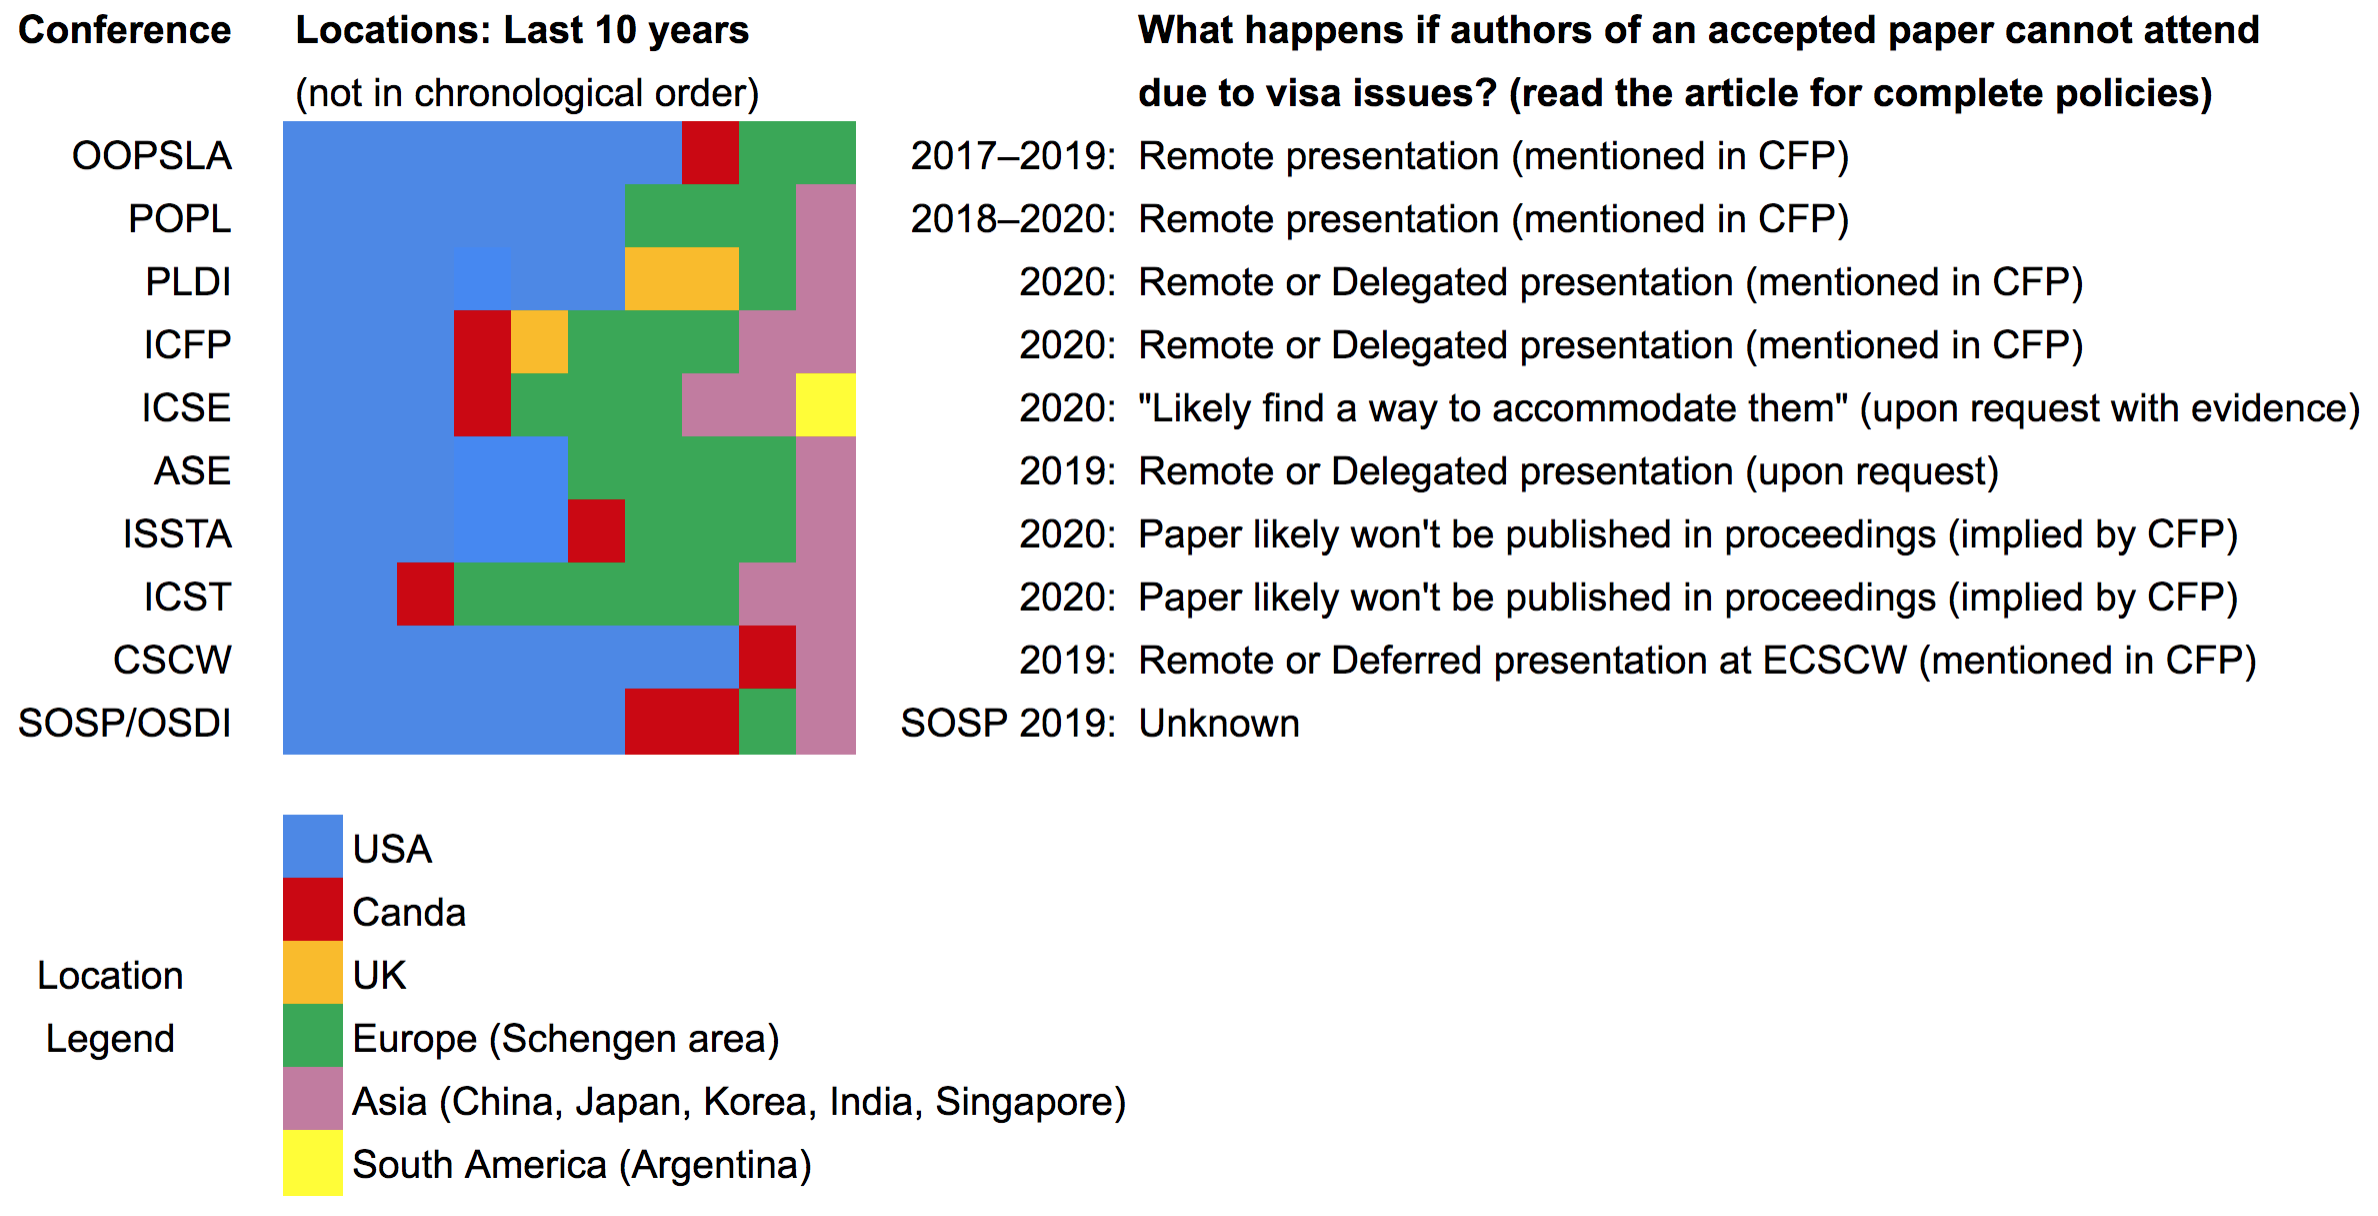 Summary of Locations and Policies for ACM SIGPLAN and SIGSOFT conferences